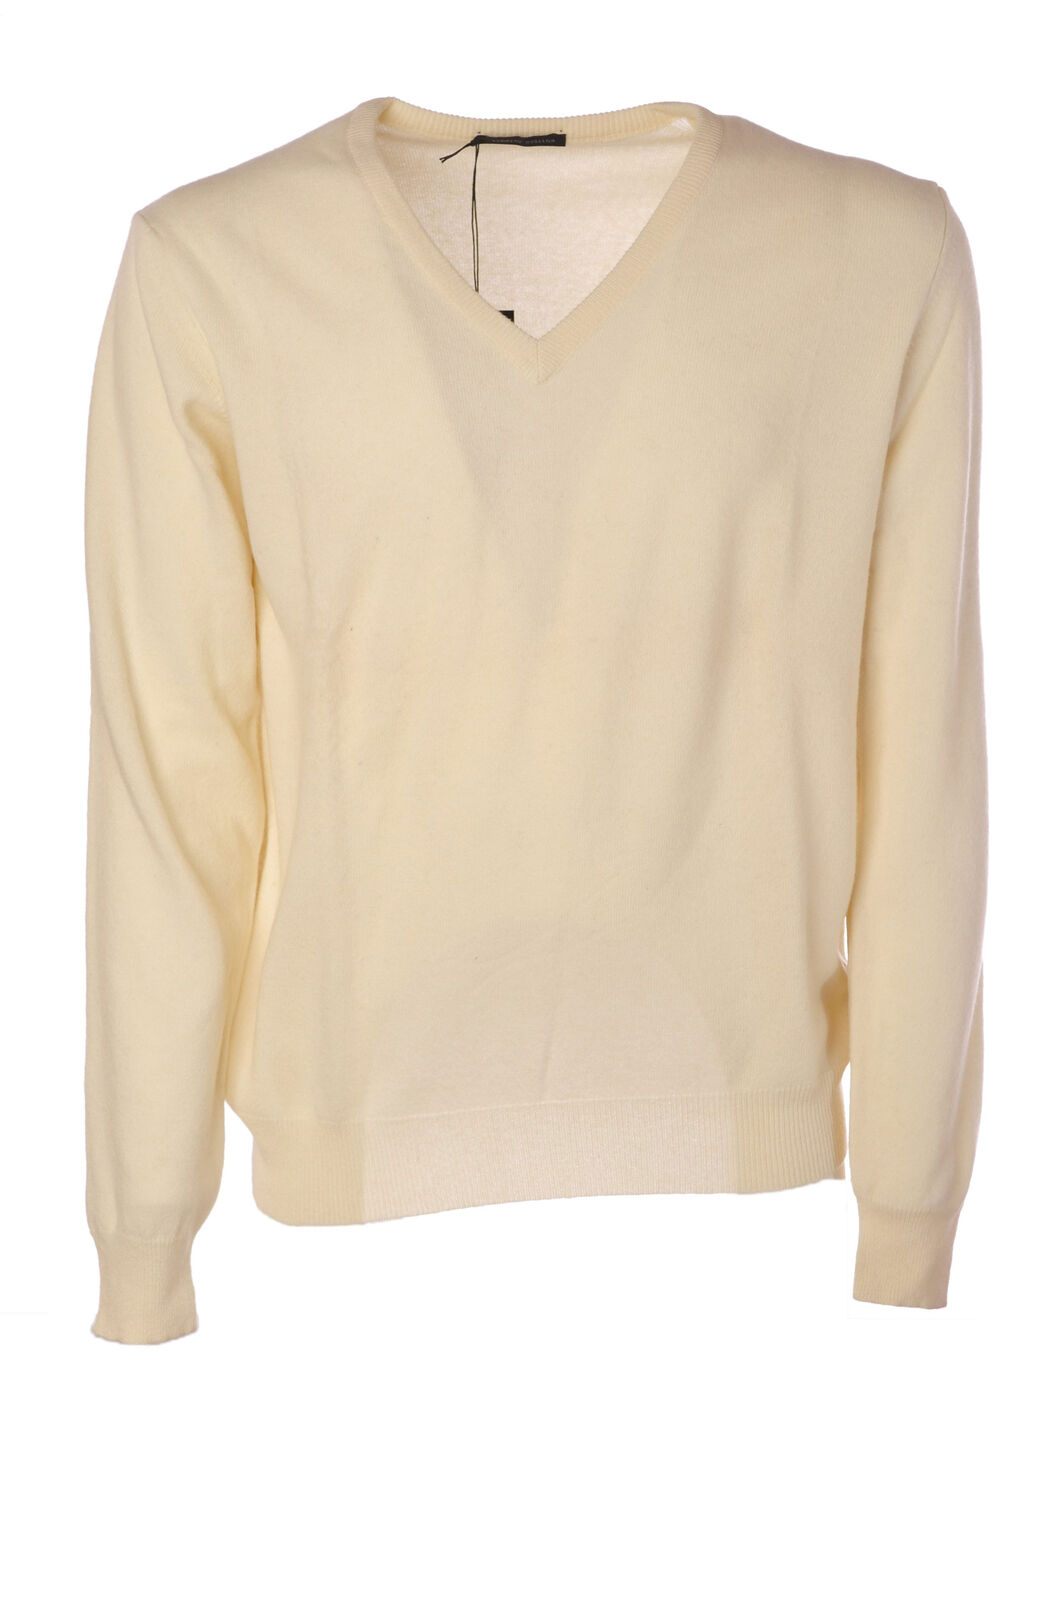 Roberto Collina  -  Sweaters - Male - Weiß - 2845329N173626